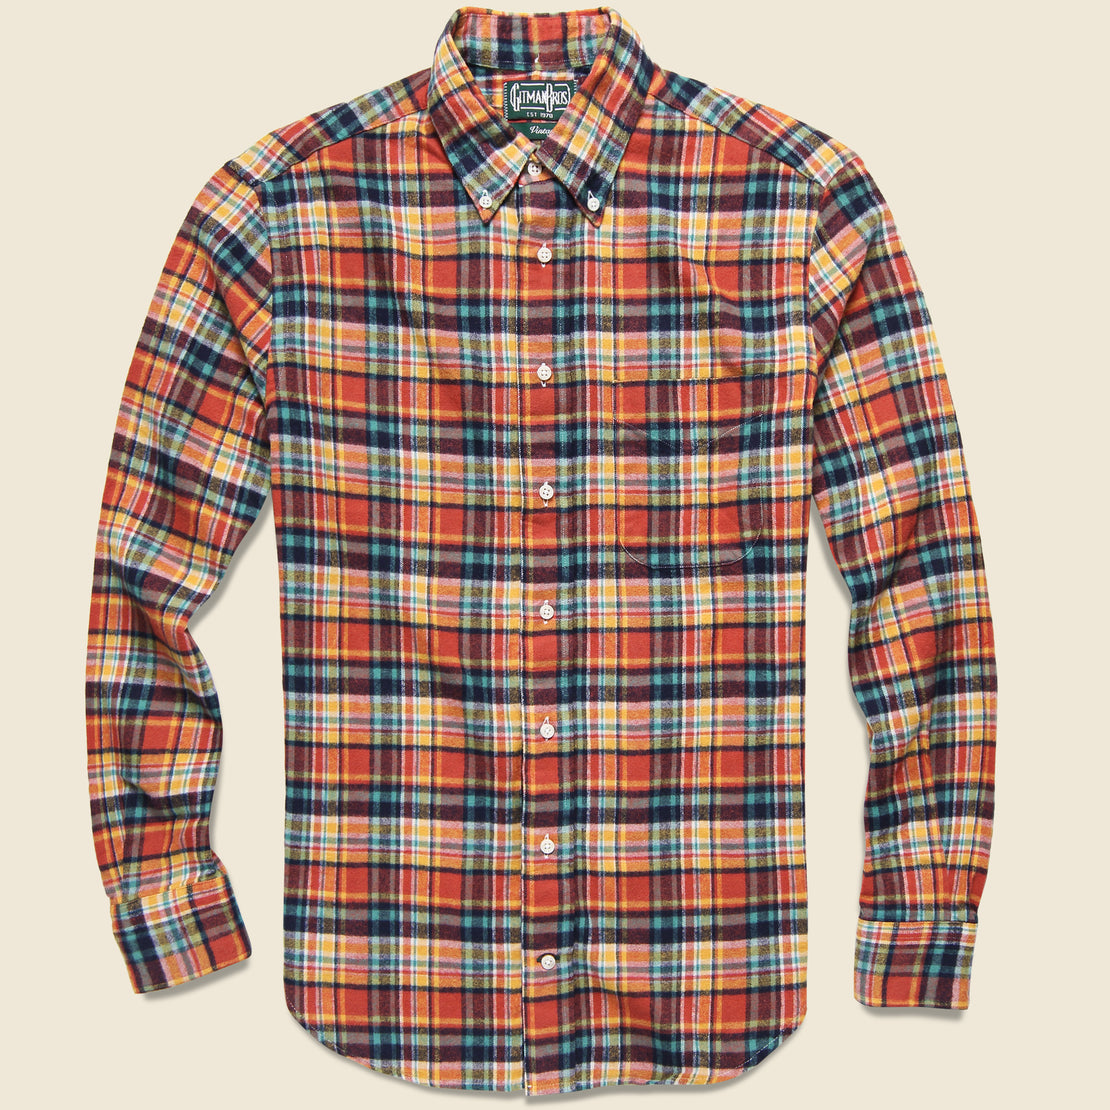 Gitman Vintage Plaid Flannel - Burnt Orange